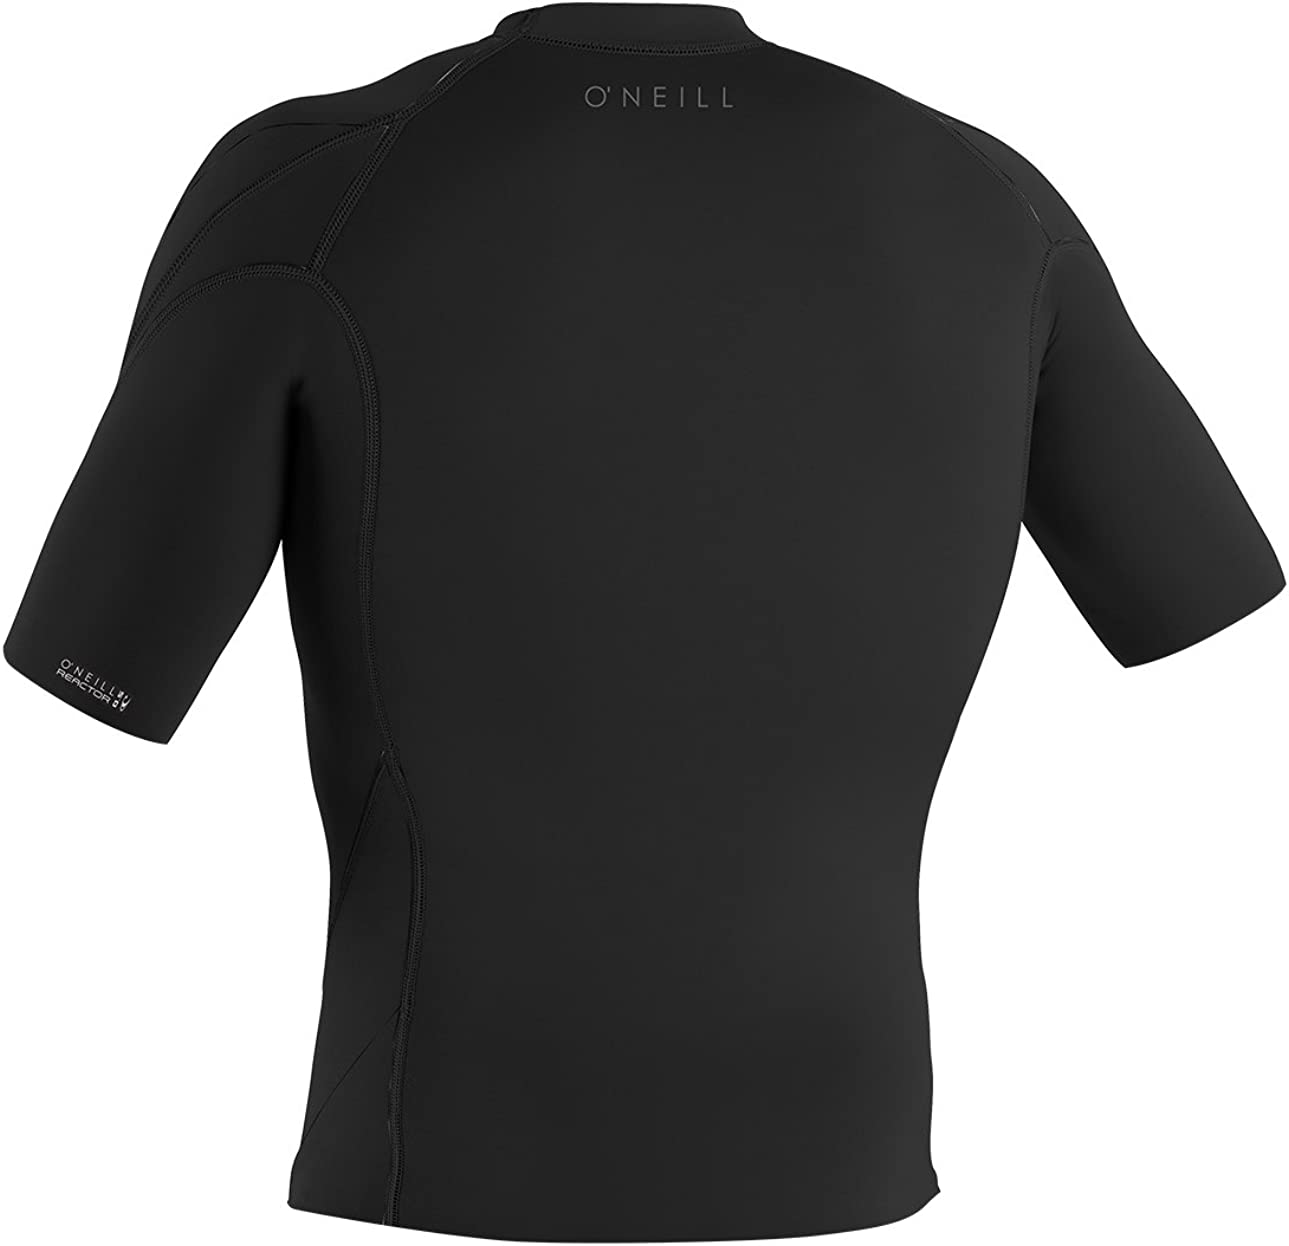 ONeill Mens Reactor-2 1.5mm Short Sleeve Top